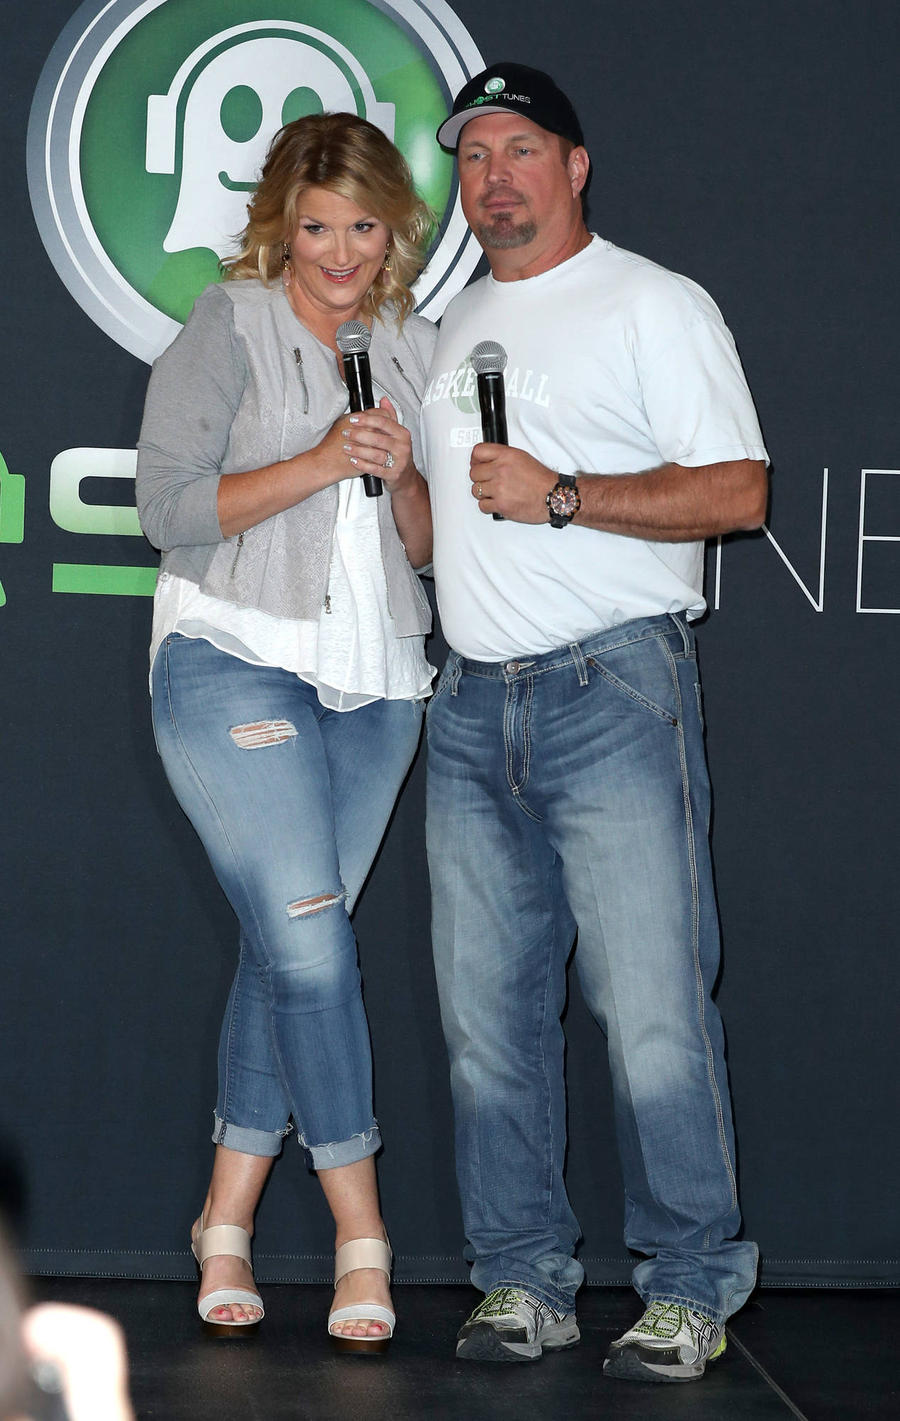 Garth Brooks & Trisha Yearwood To Sing Classic Duets At Cma Awards